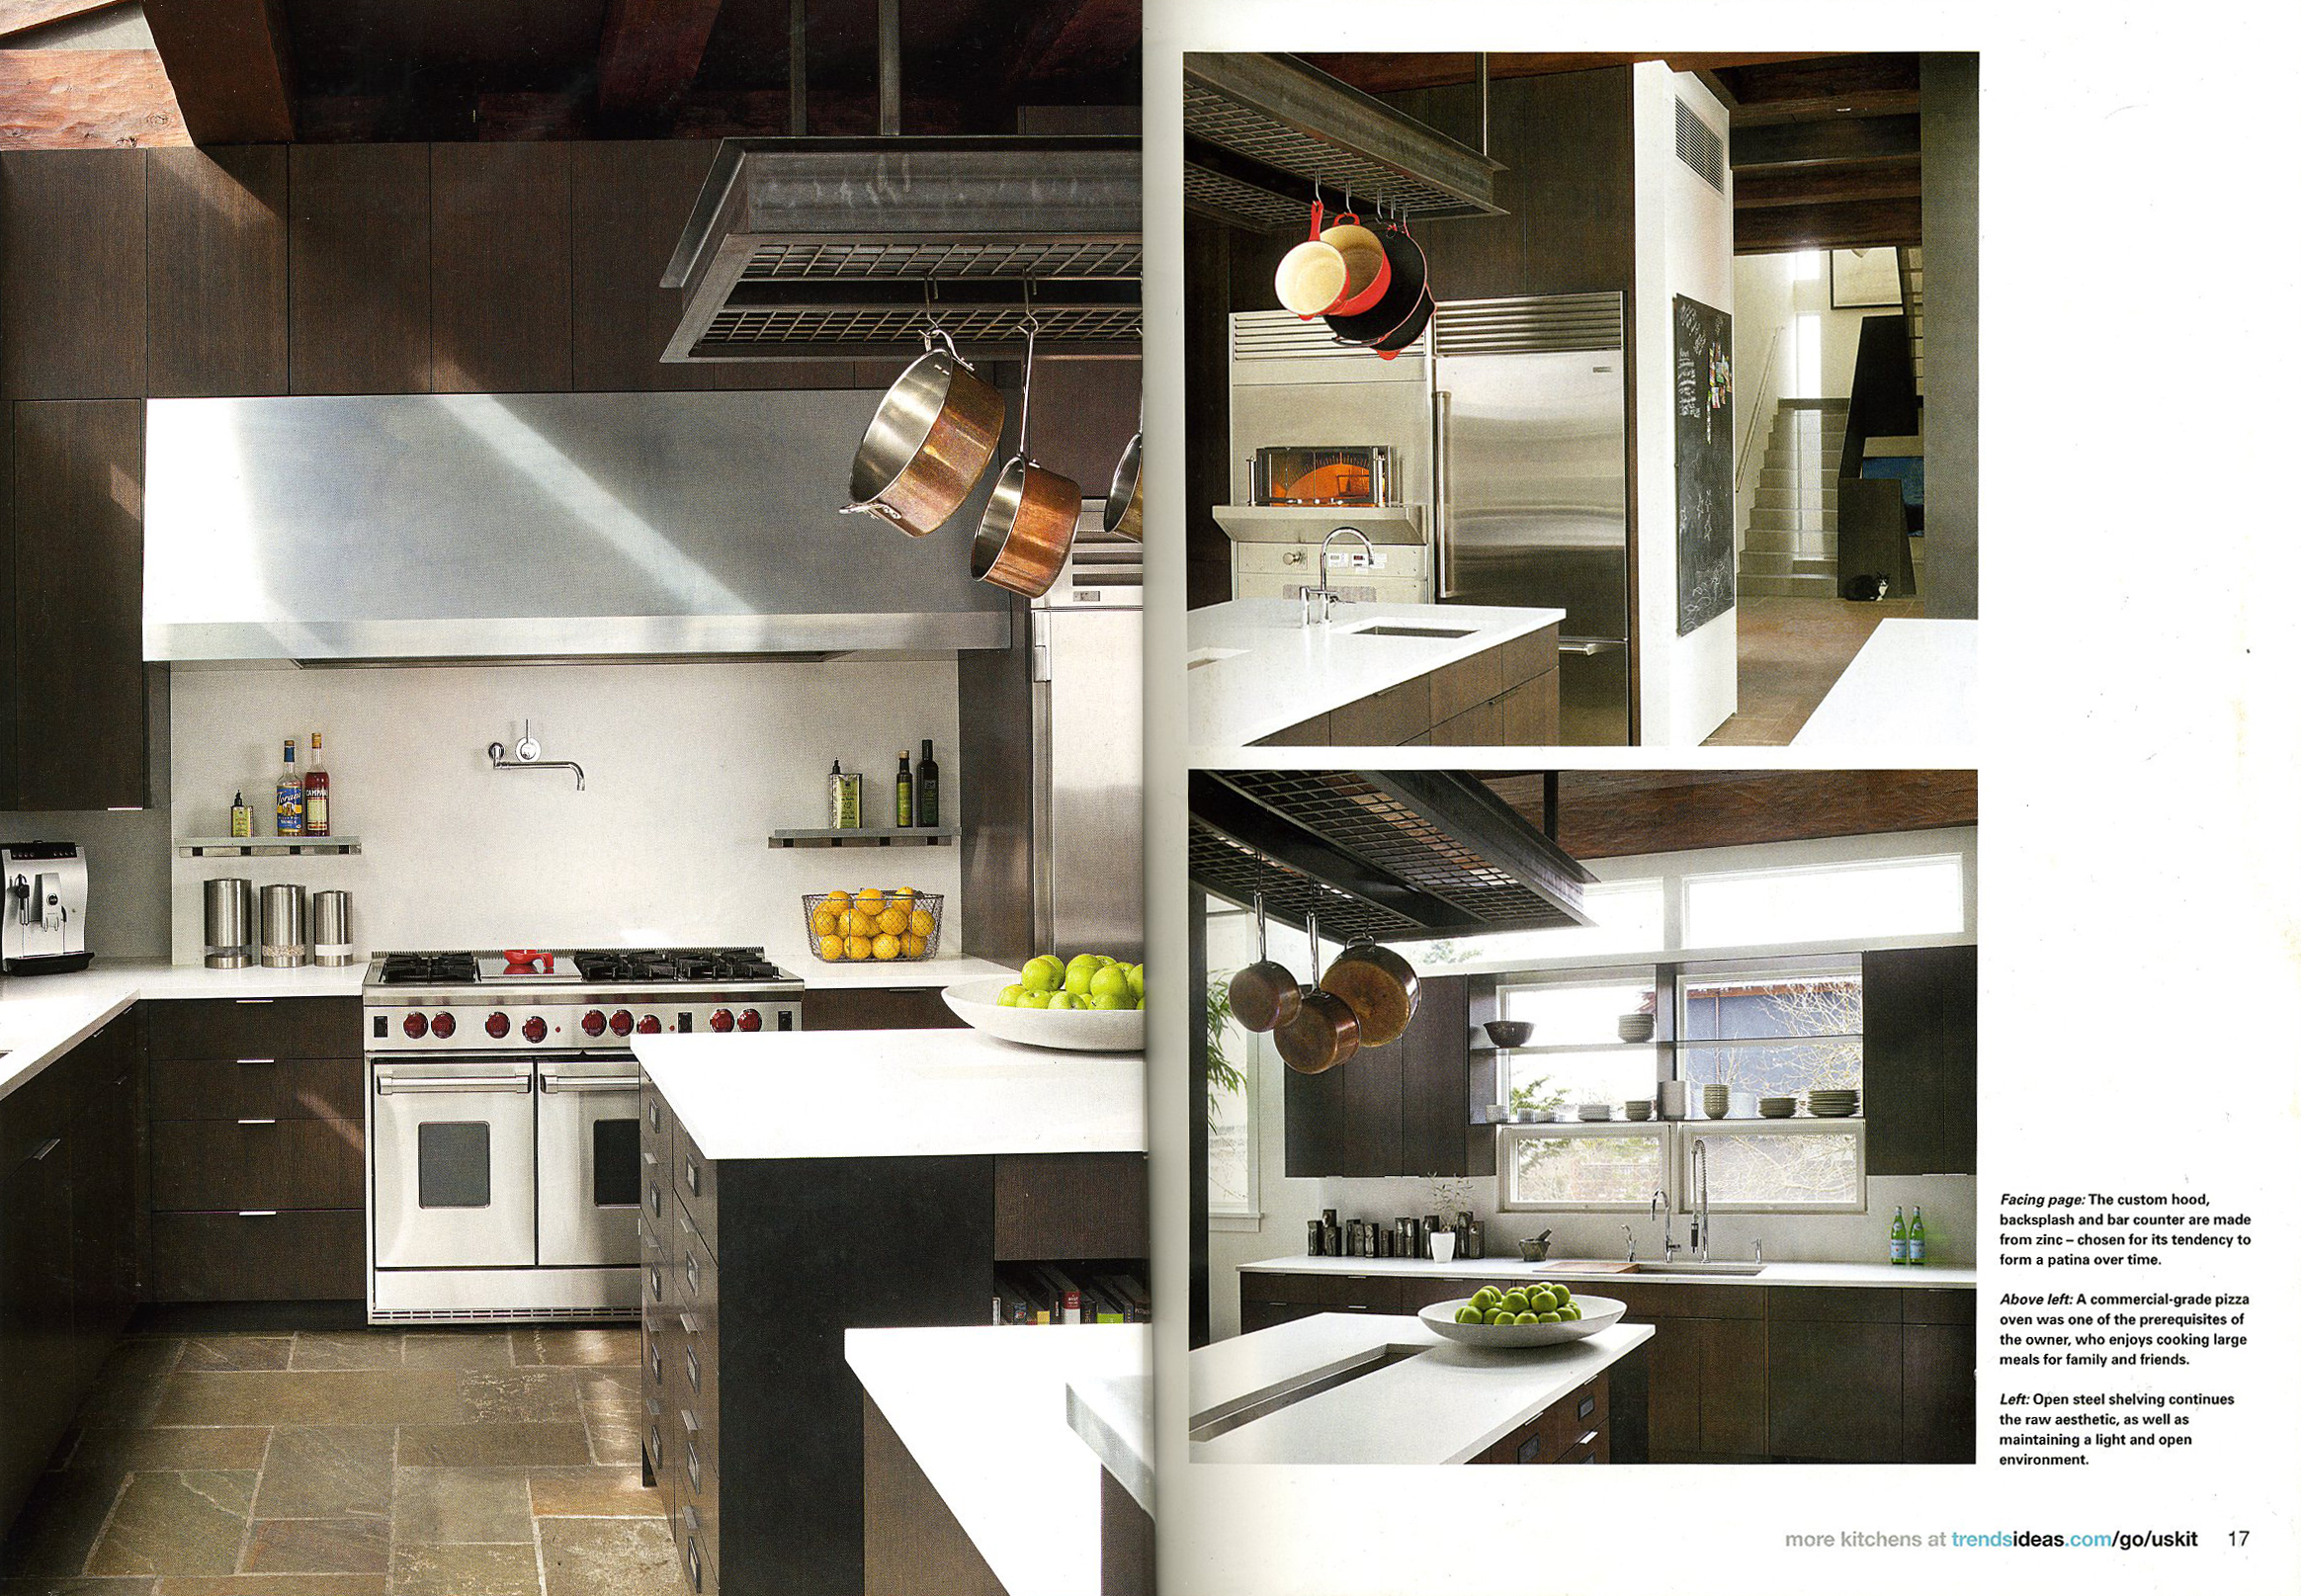 Kitchen Trends16_17.jpg